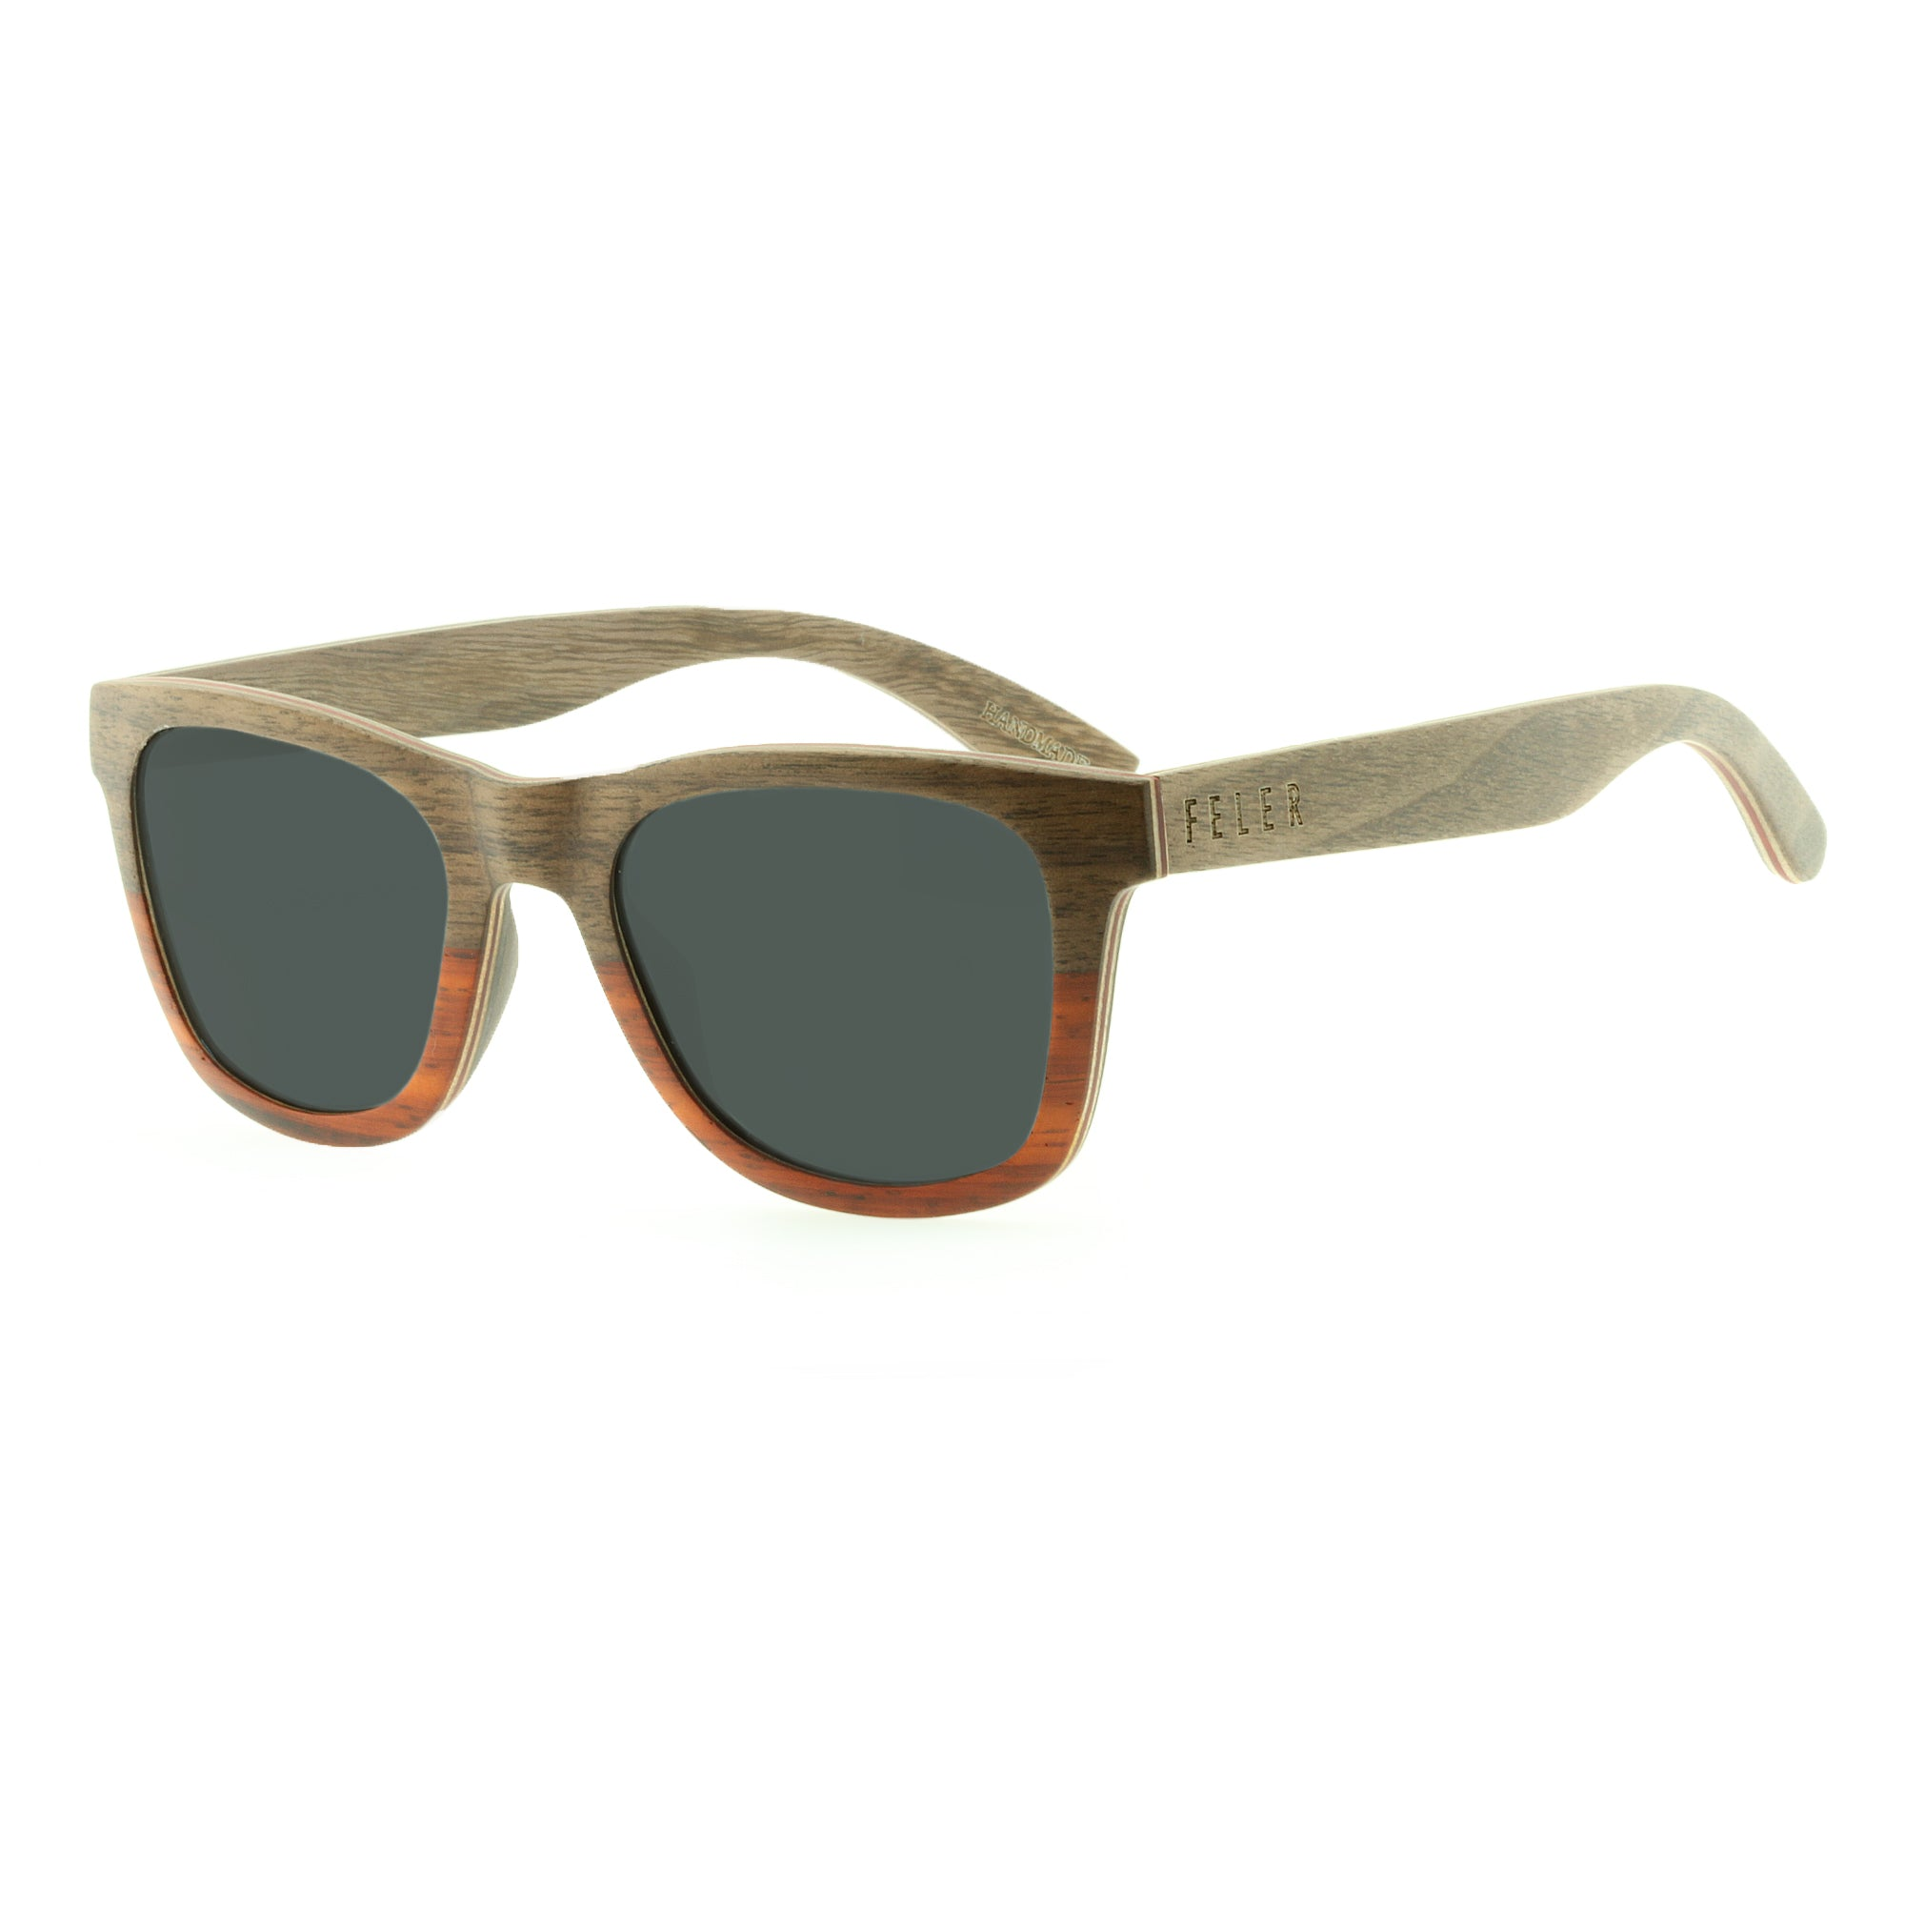 9c49840c44 Regular Wood Walnut - Gafas de sol - Feler Sunglasses